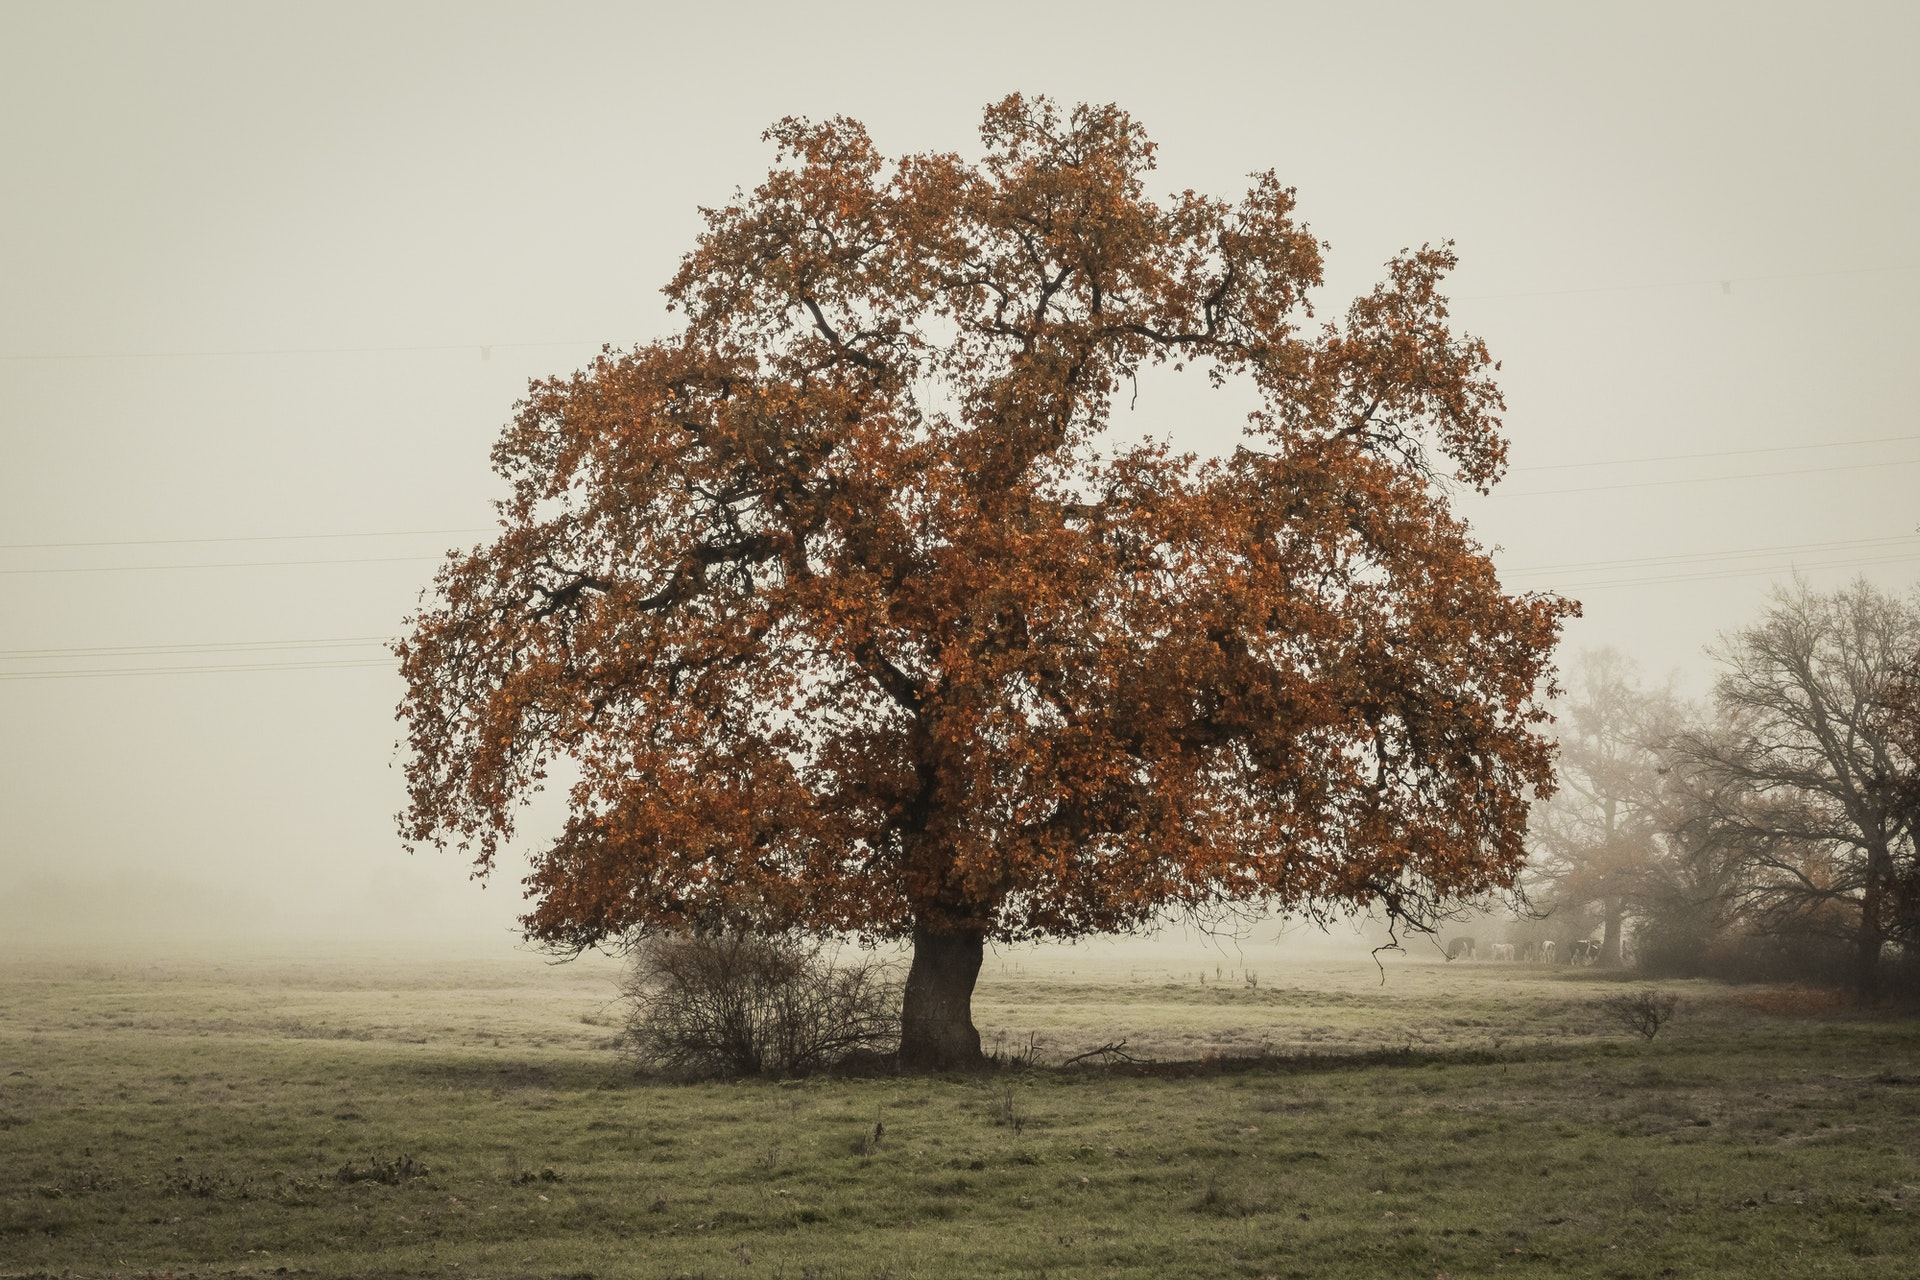 Taking Oak Trees For Energy?